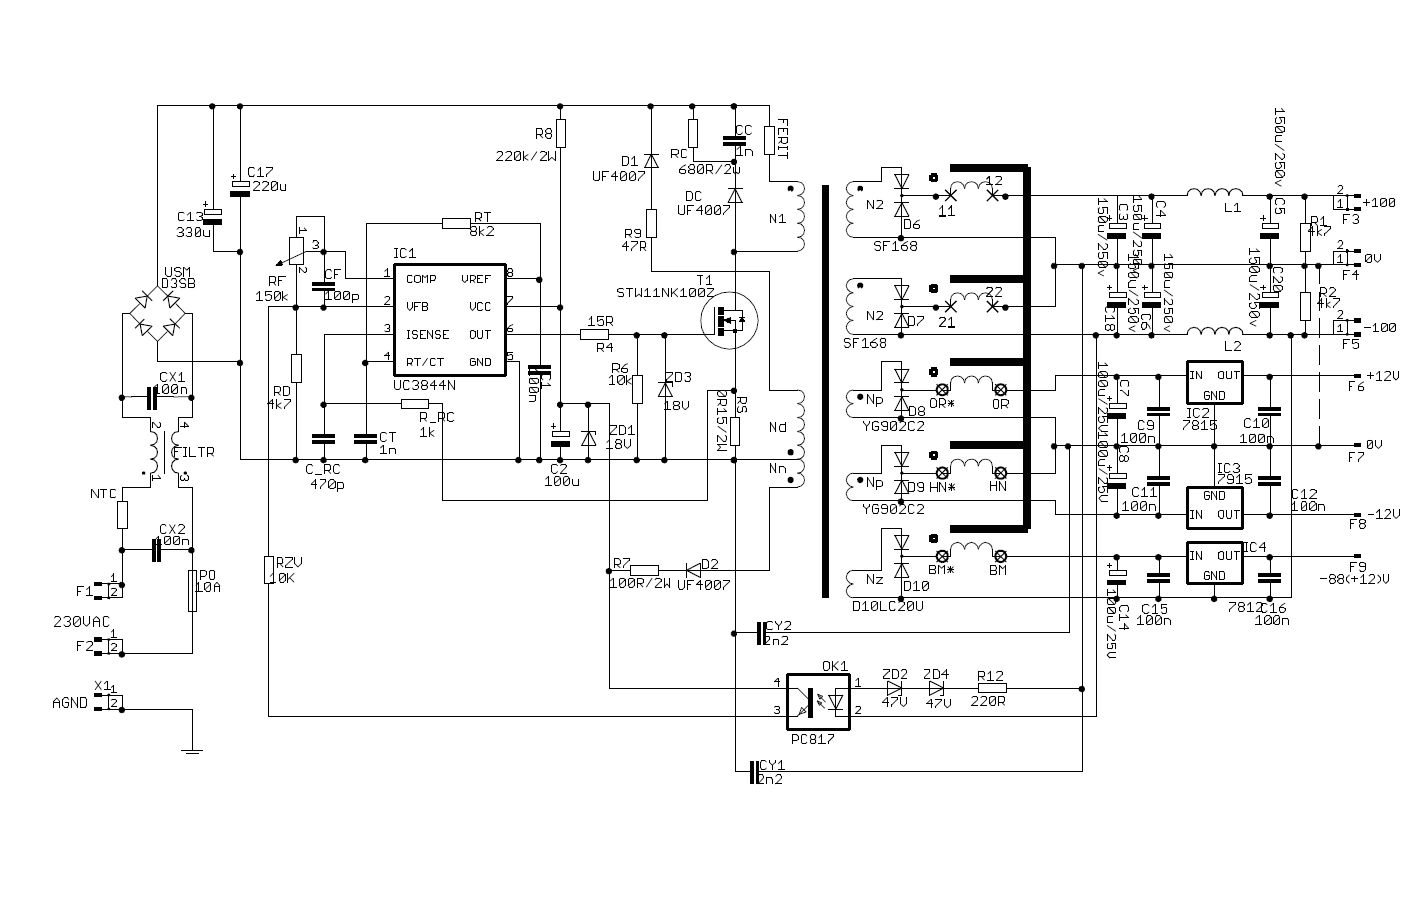 Atx 450w Smps Circuit Diagram Farmall Super M Wiring Power Supply Schematic Electro Help 2x100v 500w Audio Amplifier Switchmode Uc3844